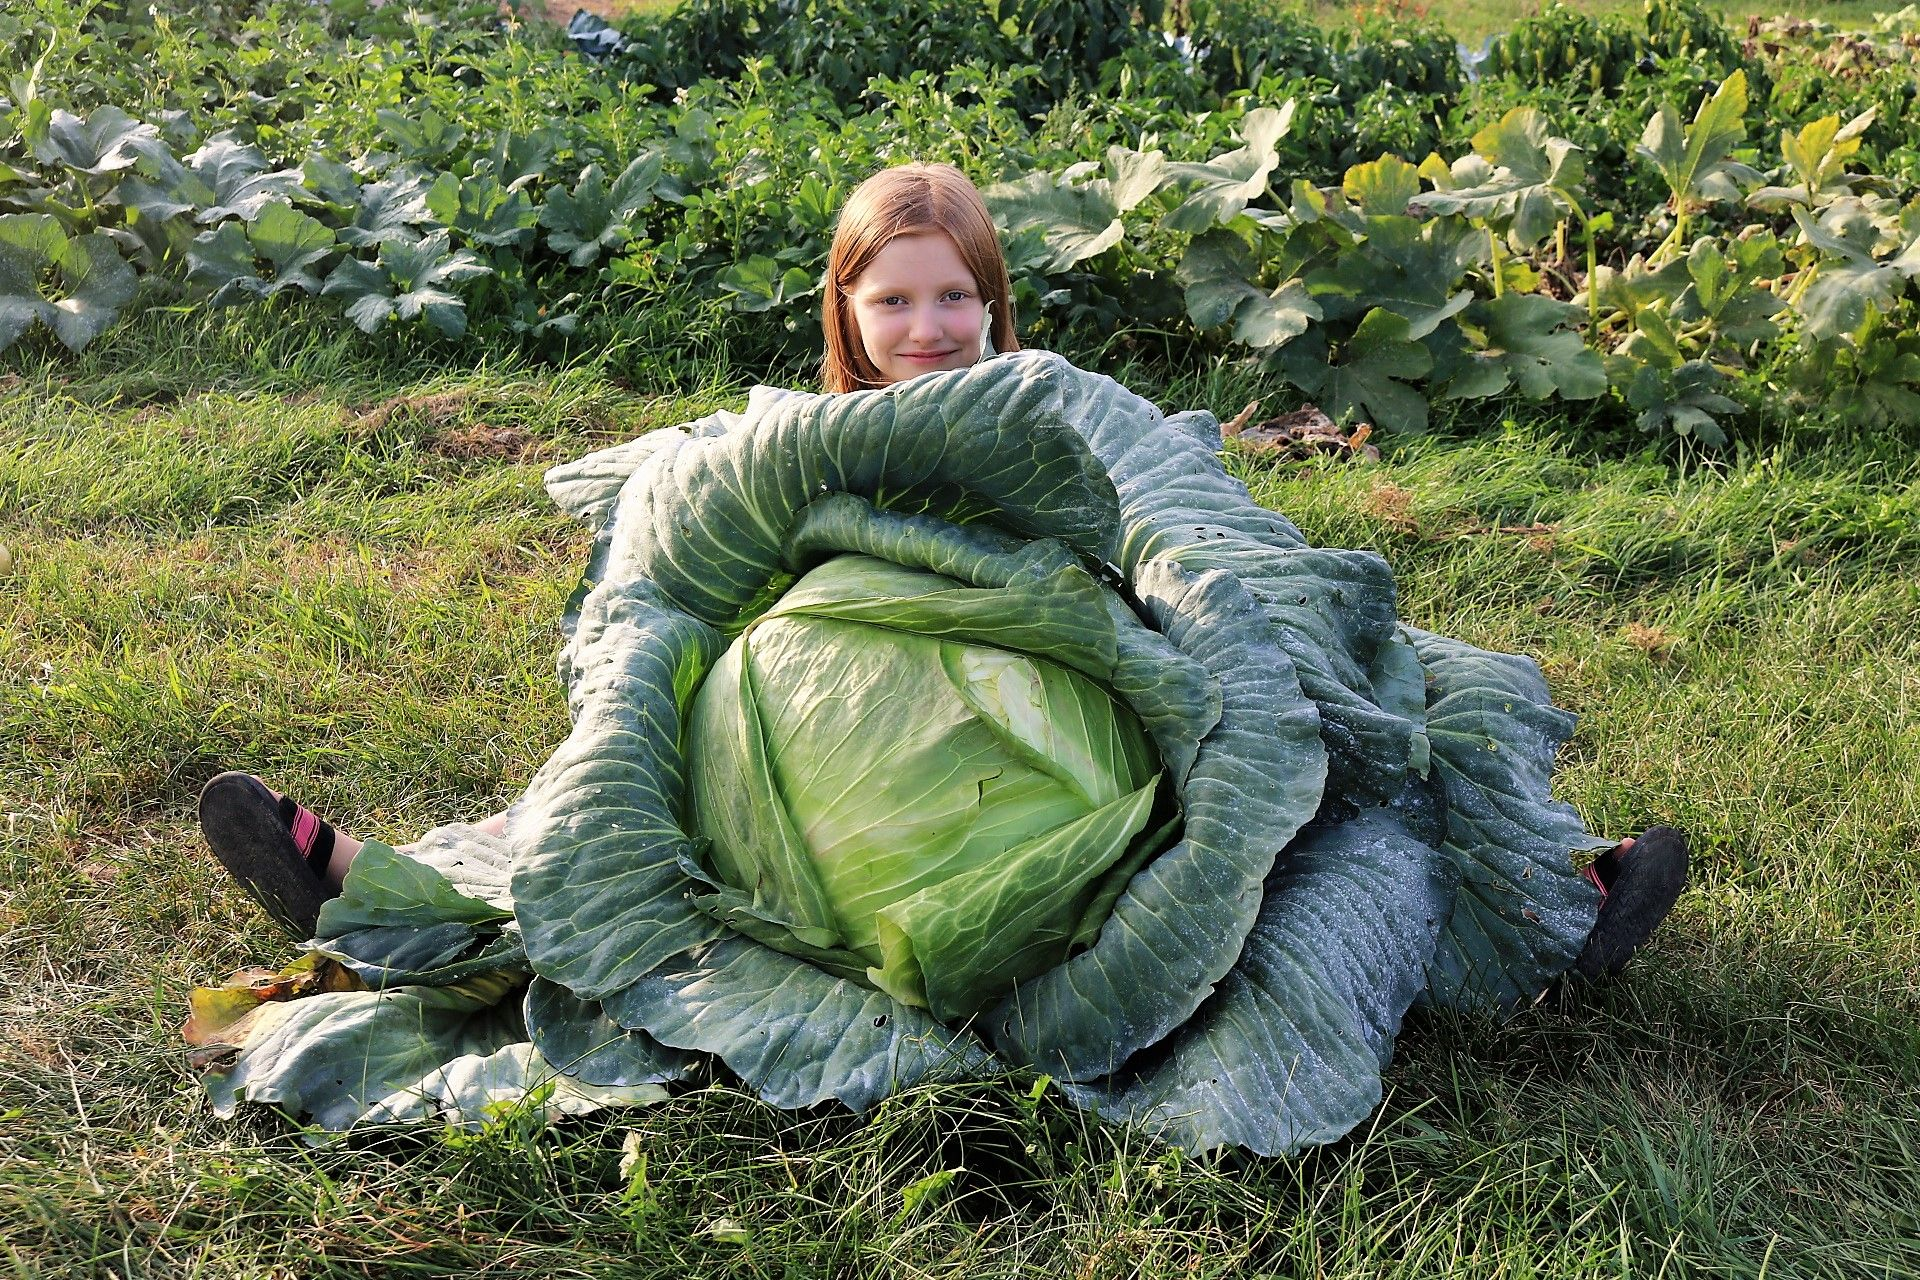 Kara Hassenfratz, of St. Mary's Elementary School in Lancaster, grew this 38-pound cabbage. She was named the New York State winner of the National Bonnie Plants Cabbage Program contest by the state Department of Agriculture and awarded a $1,000 savings bond for college by Bonnie Plants. More than 1.5 million third-graders in 48 states try to grow colossal cabbages as part of the annual Bonnie Plants contest. (Photo provided by Bonnie Plants)